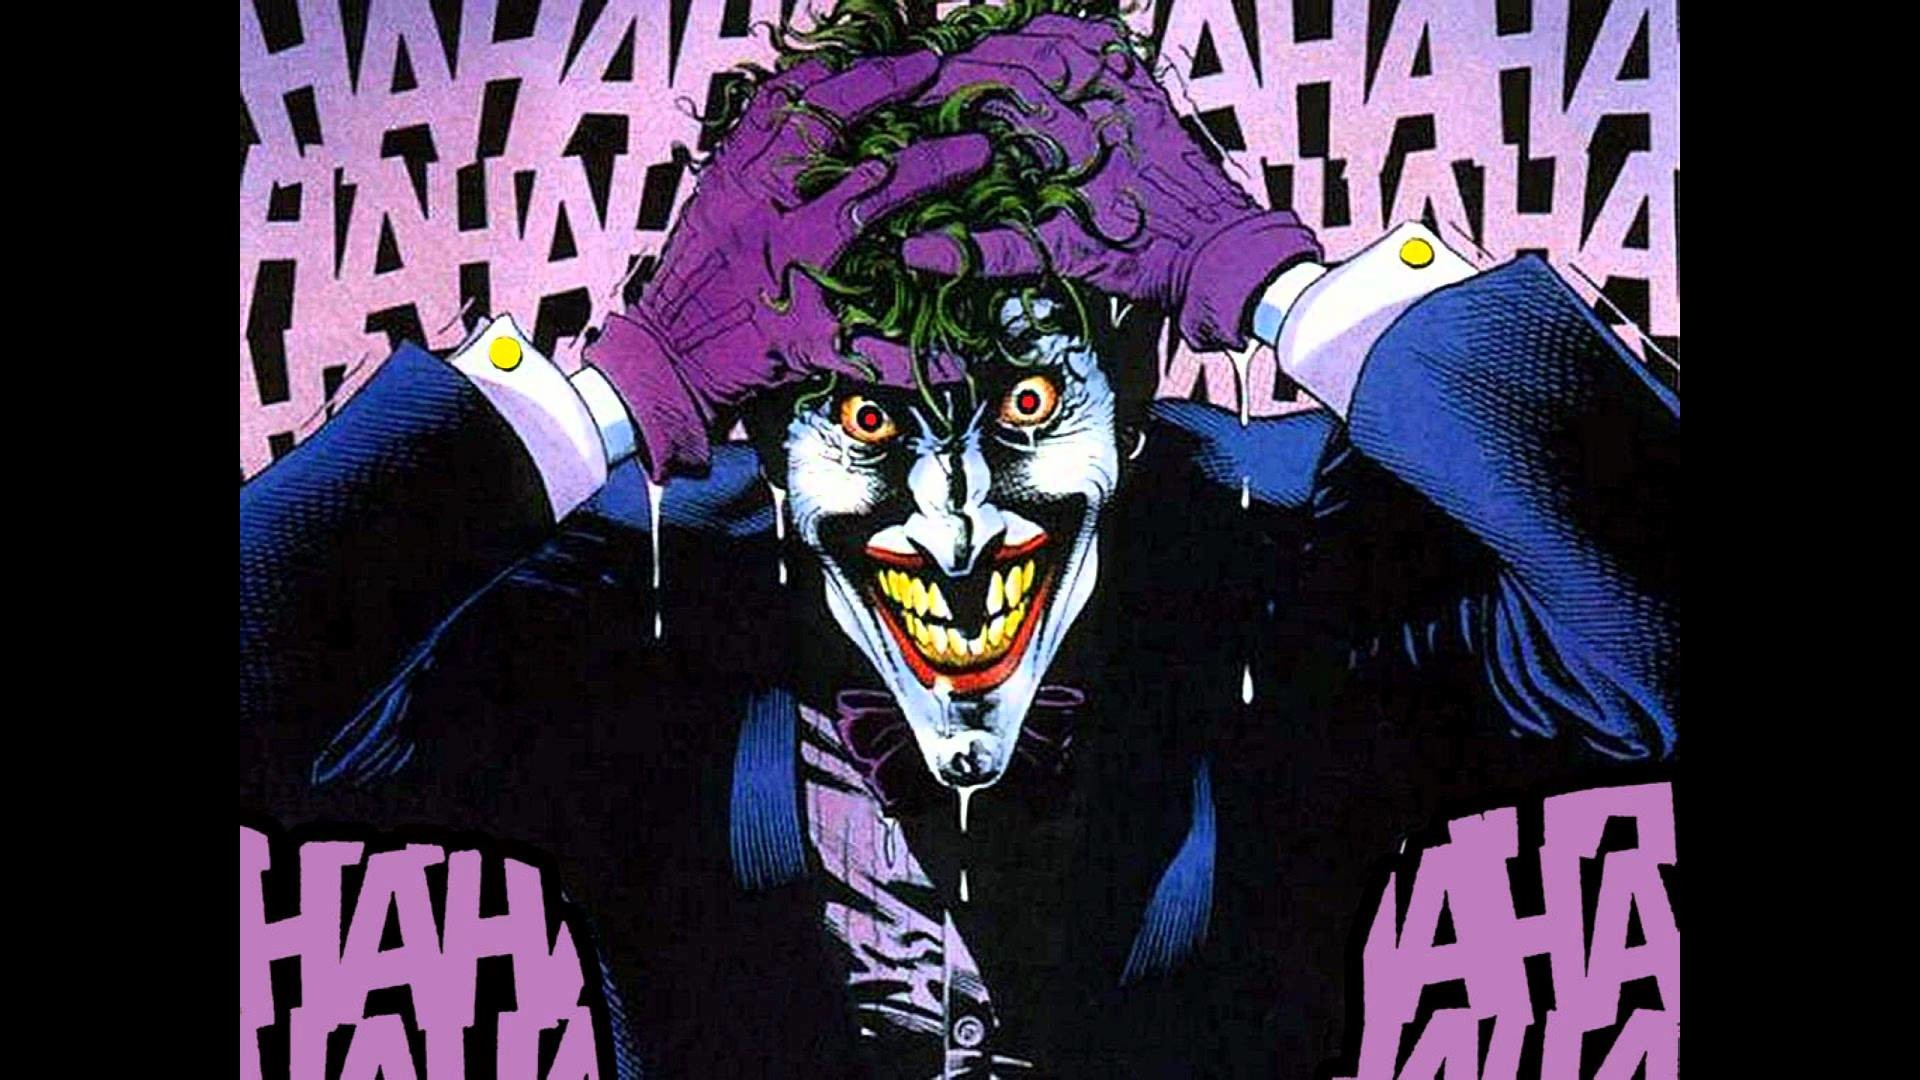 1920x1080 In the comics, The Joker escapes Arkham, shoots and paralyzes Barbara  Gordon in order to terrorize her father, Gotham City Police Commissioner  Jim Gordon